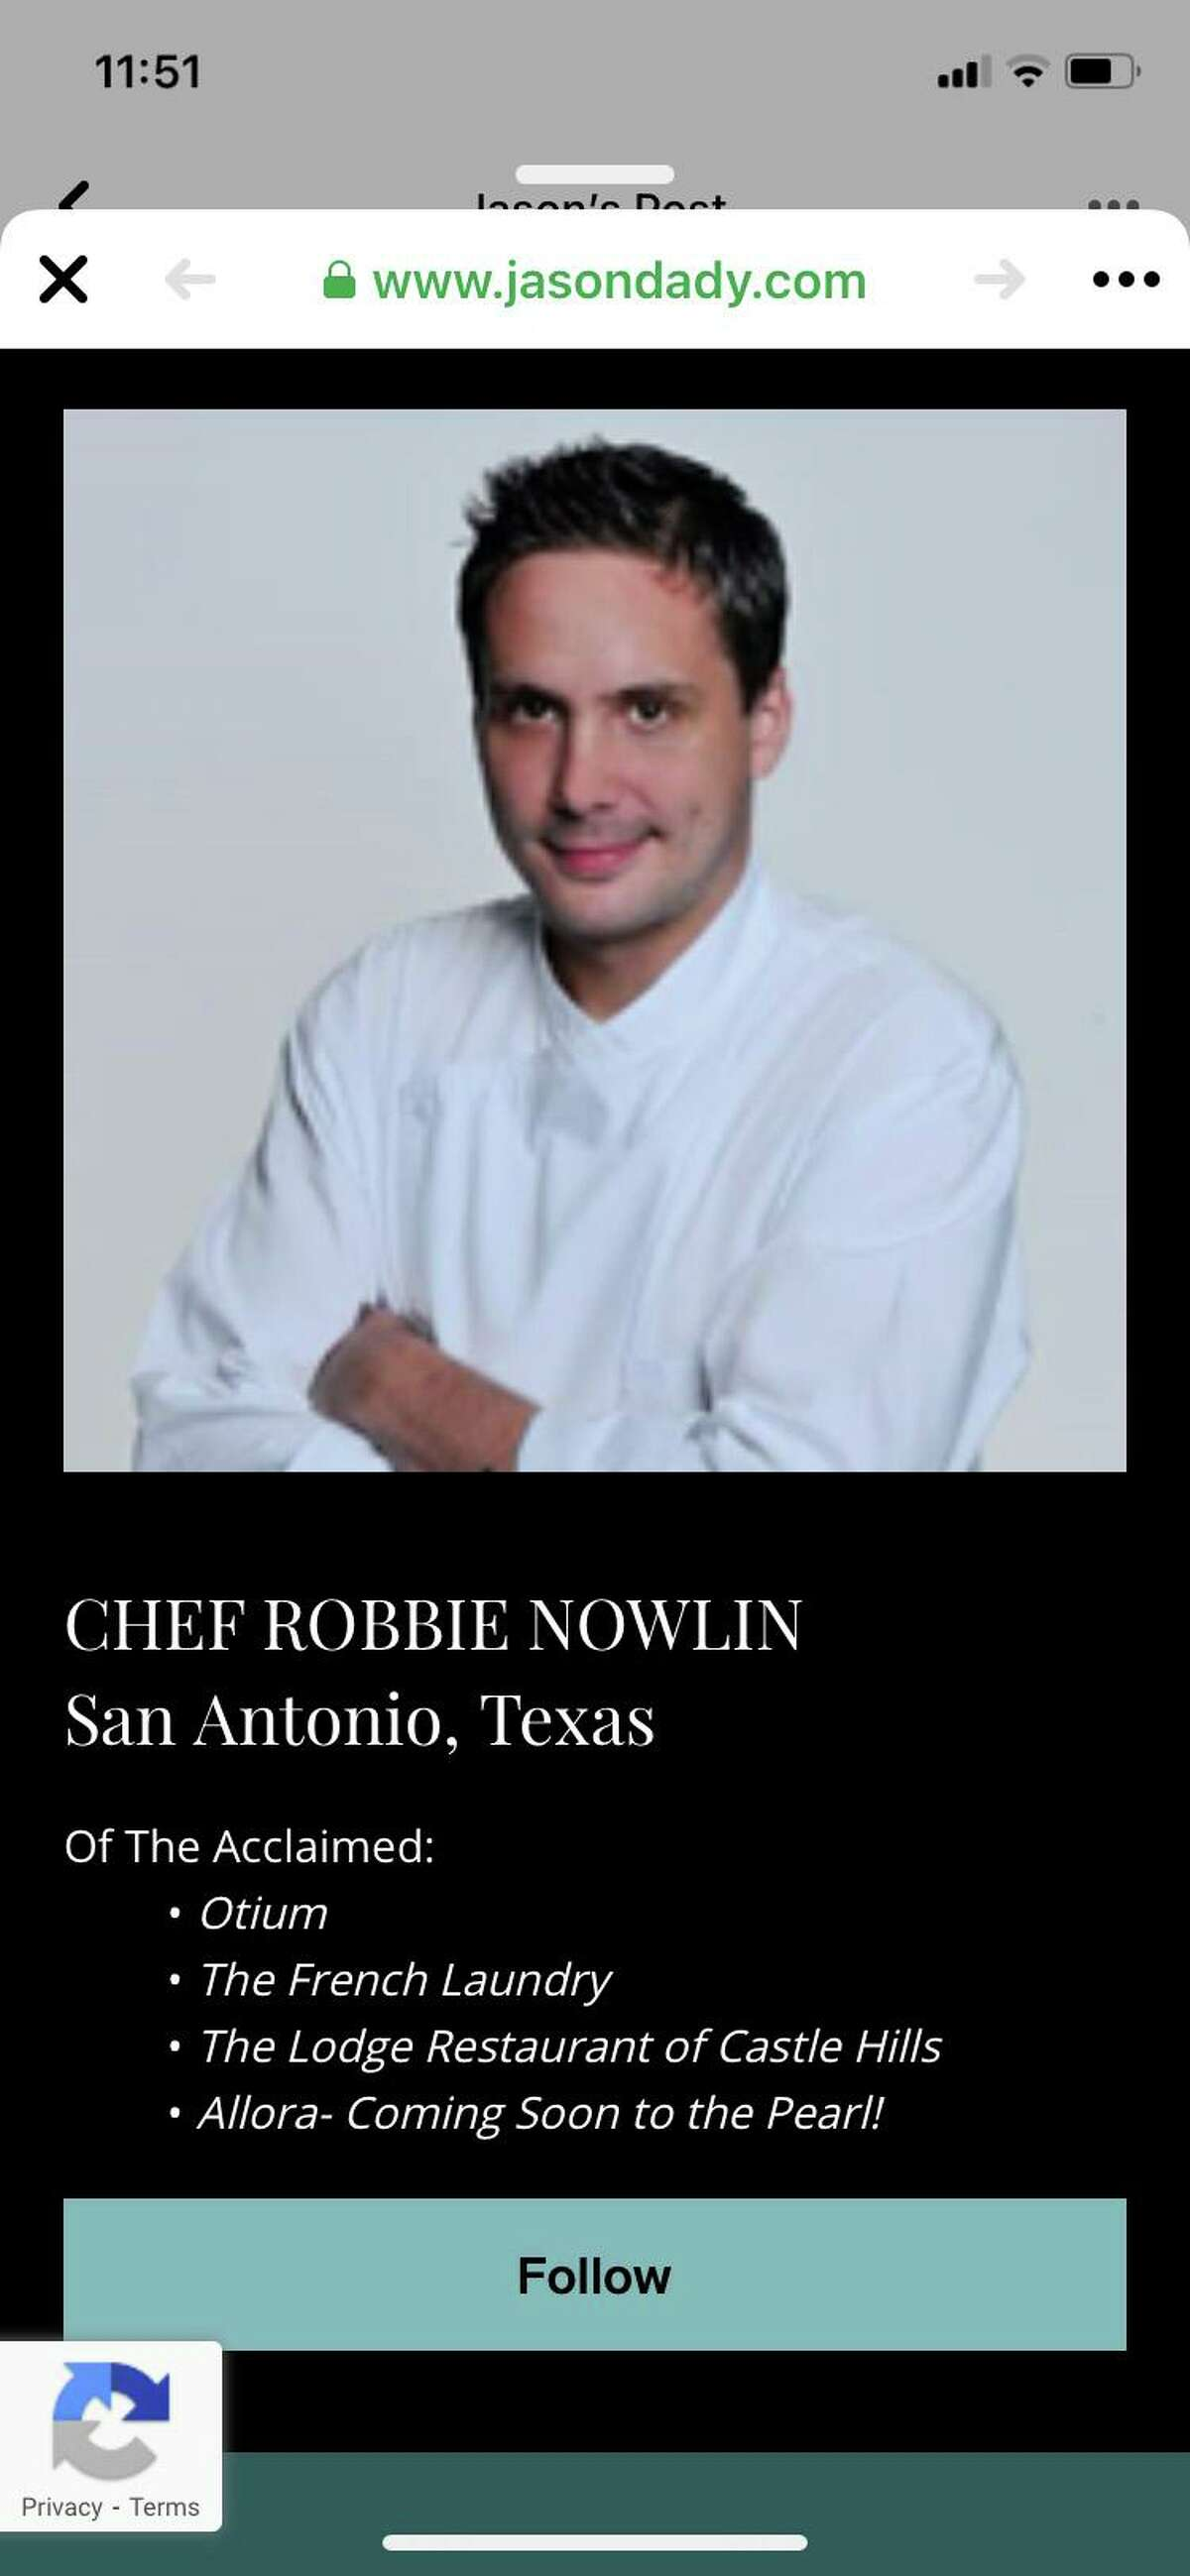 San Antonio chef Robbie Nowlin was identified as the chef at the forthcoming Allora in an advertisement briefly posted online.